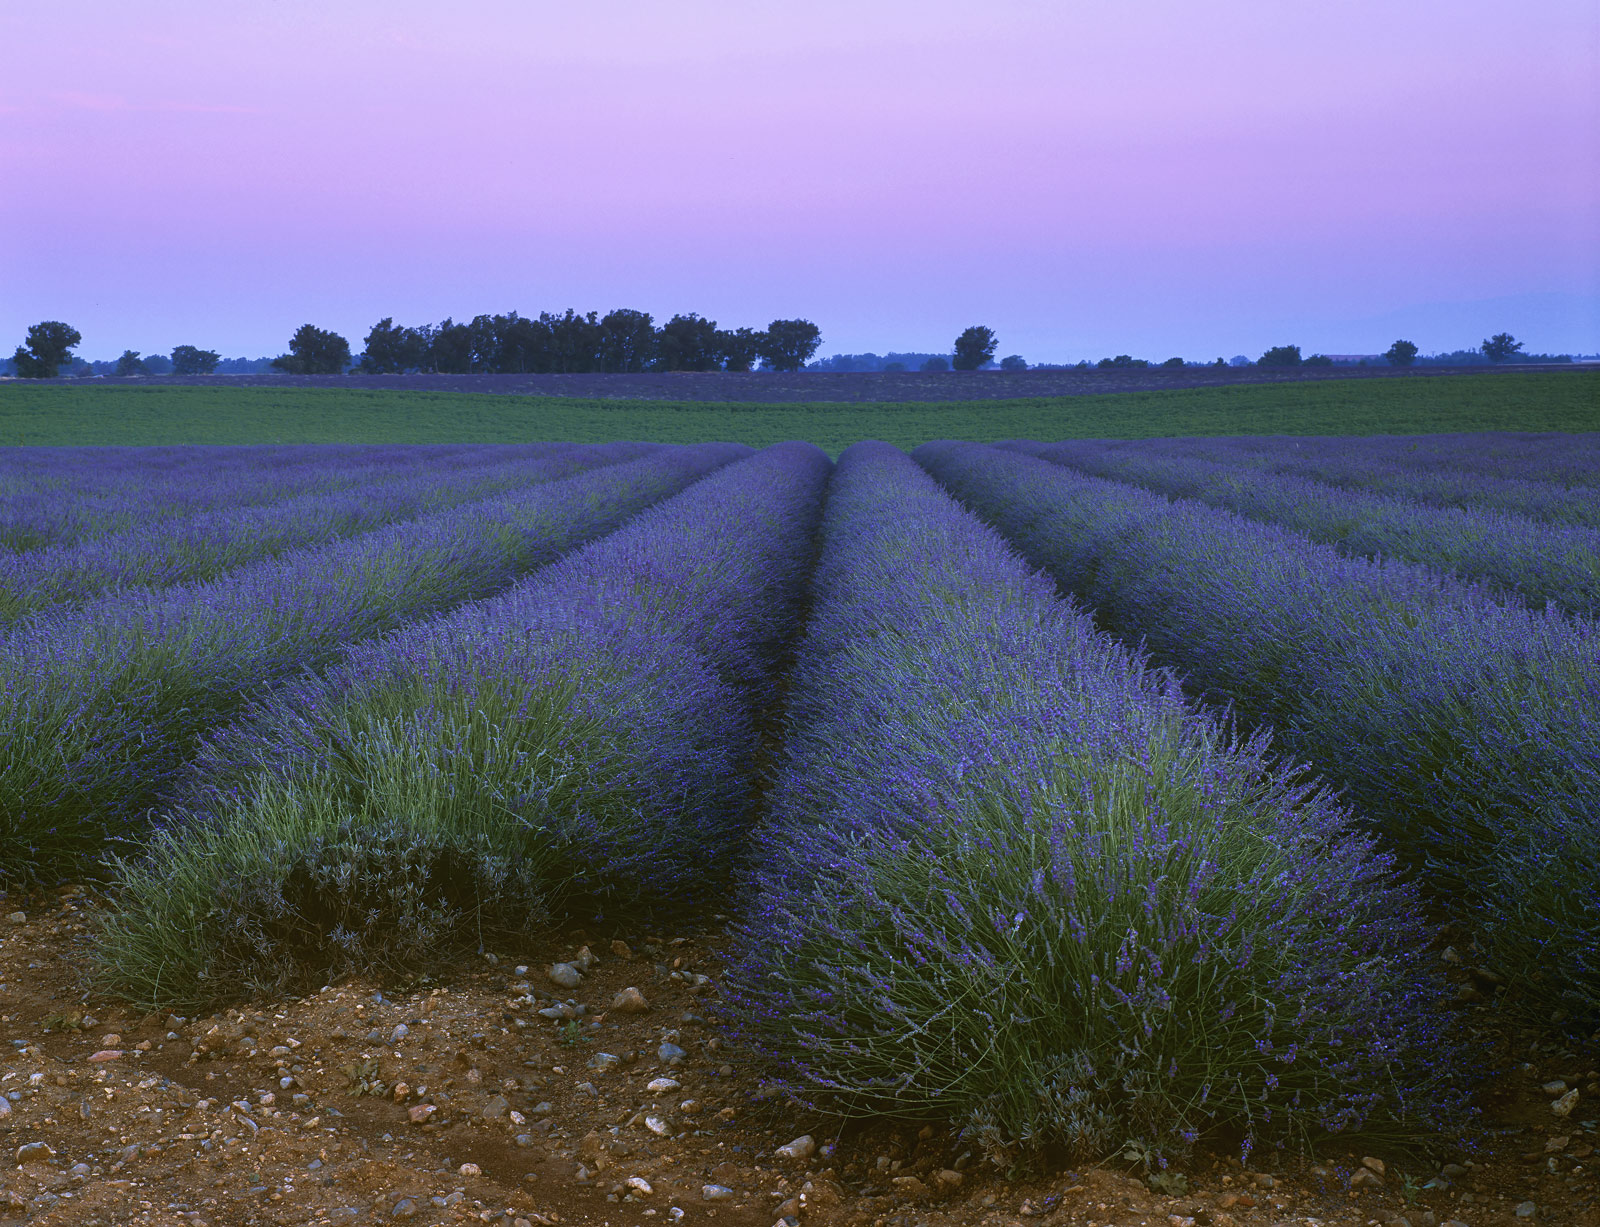 Deep blue lavender fields stretched out in front of us near the village of Valensole. I arrived well before sun up hoping...